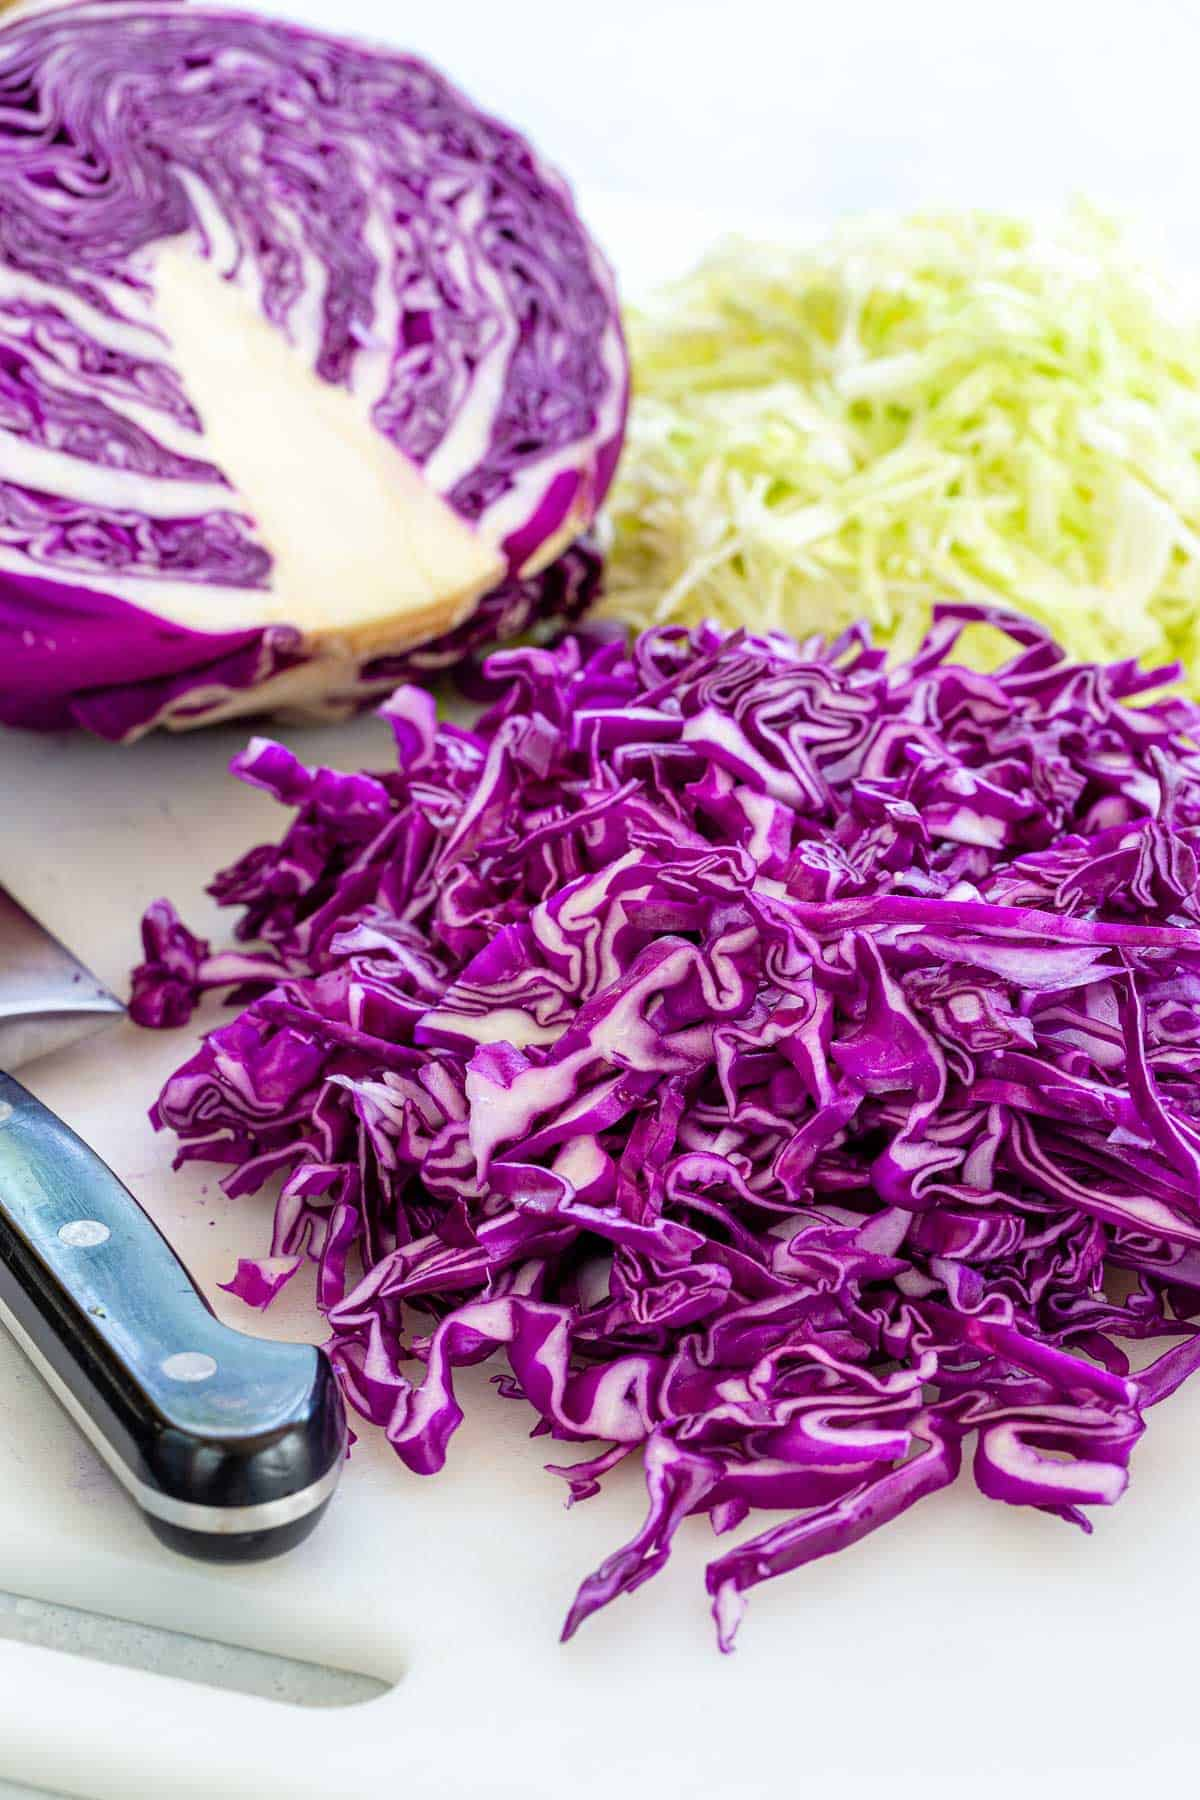 Learn how to cut cabbage with this easy step-by-step guide. This cruciferous vegetable can be used for salads, stir-fries, sauteed, boiled and braises. #cabbage #howtocook #cooking101